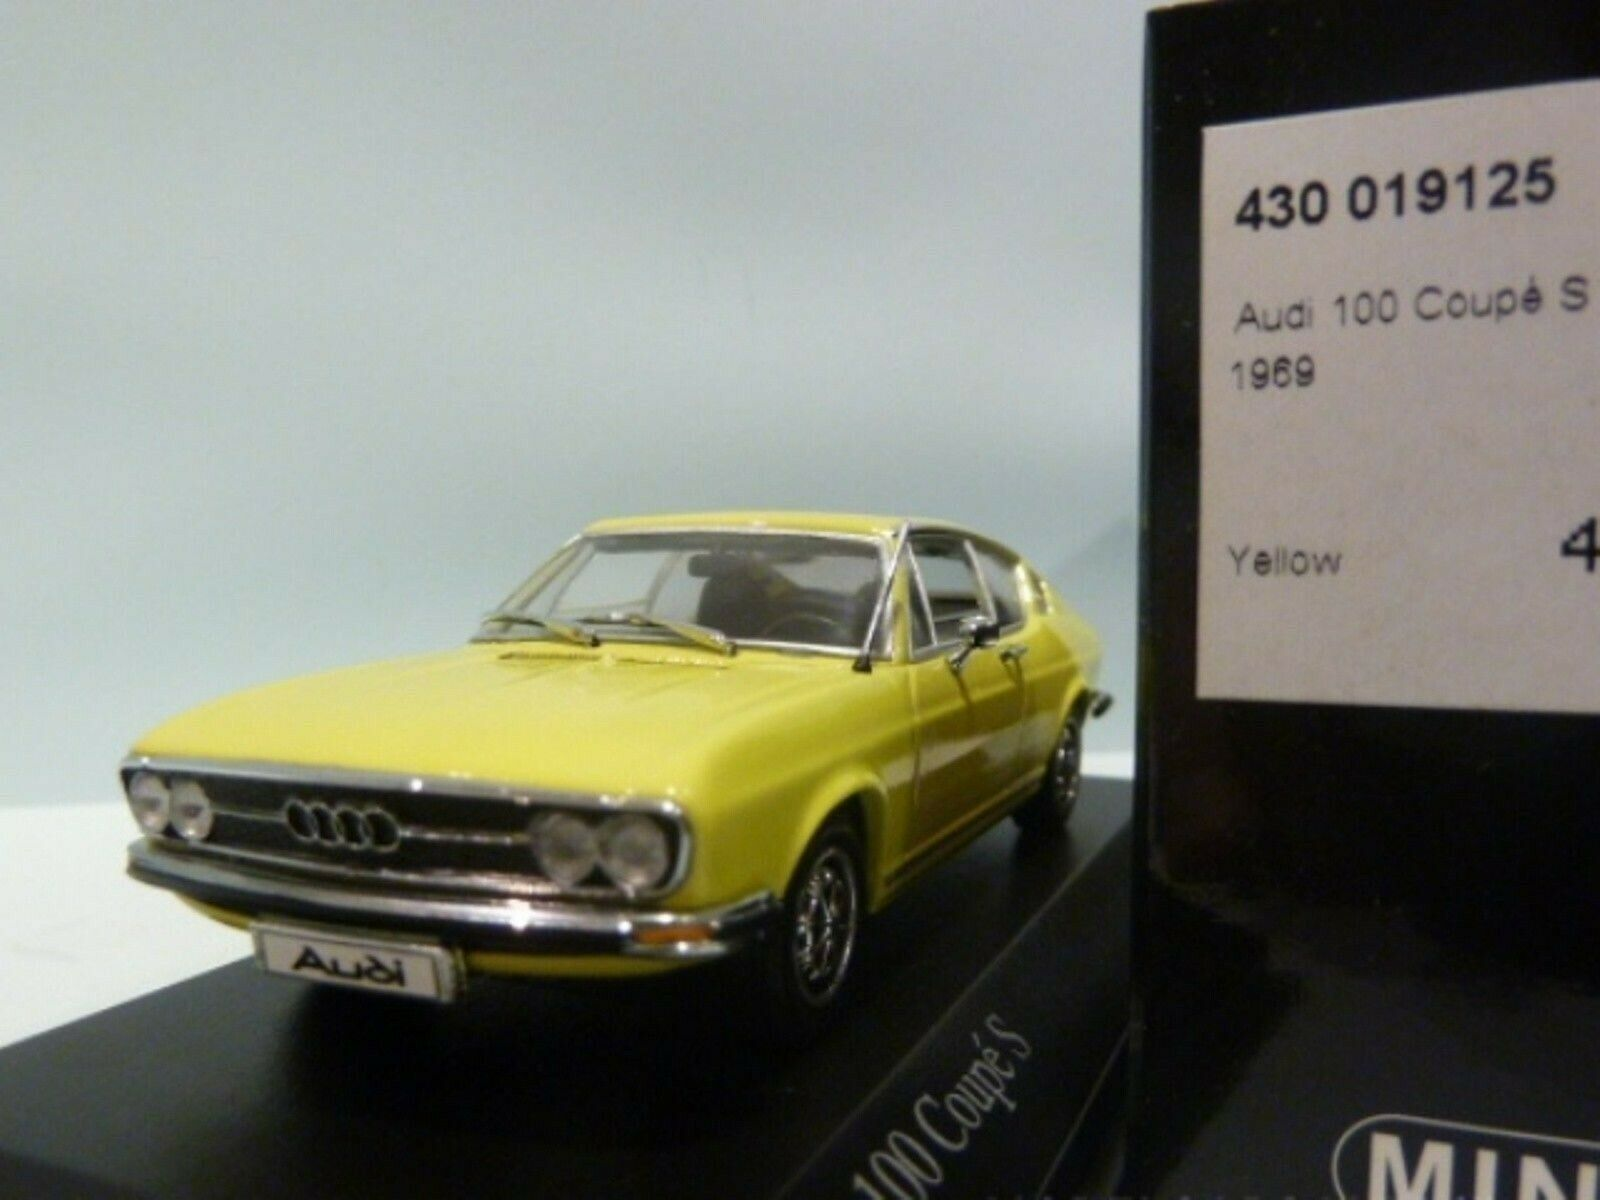 WOW EXTREMELY RARE Audi 100 C1 1.9L I4 Coupe S 1969 Yellow 1 43 Minichamps-50 80